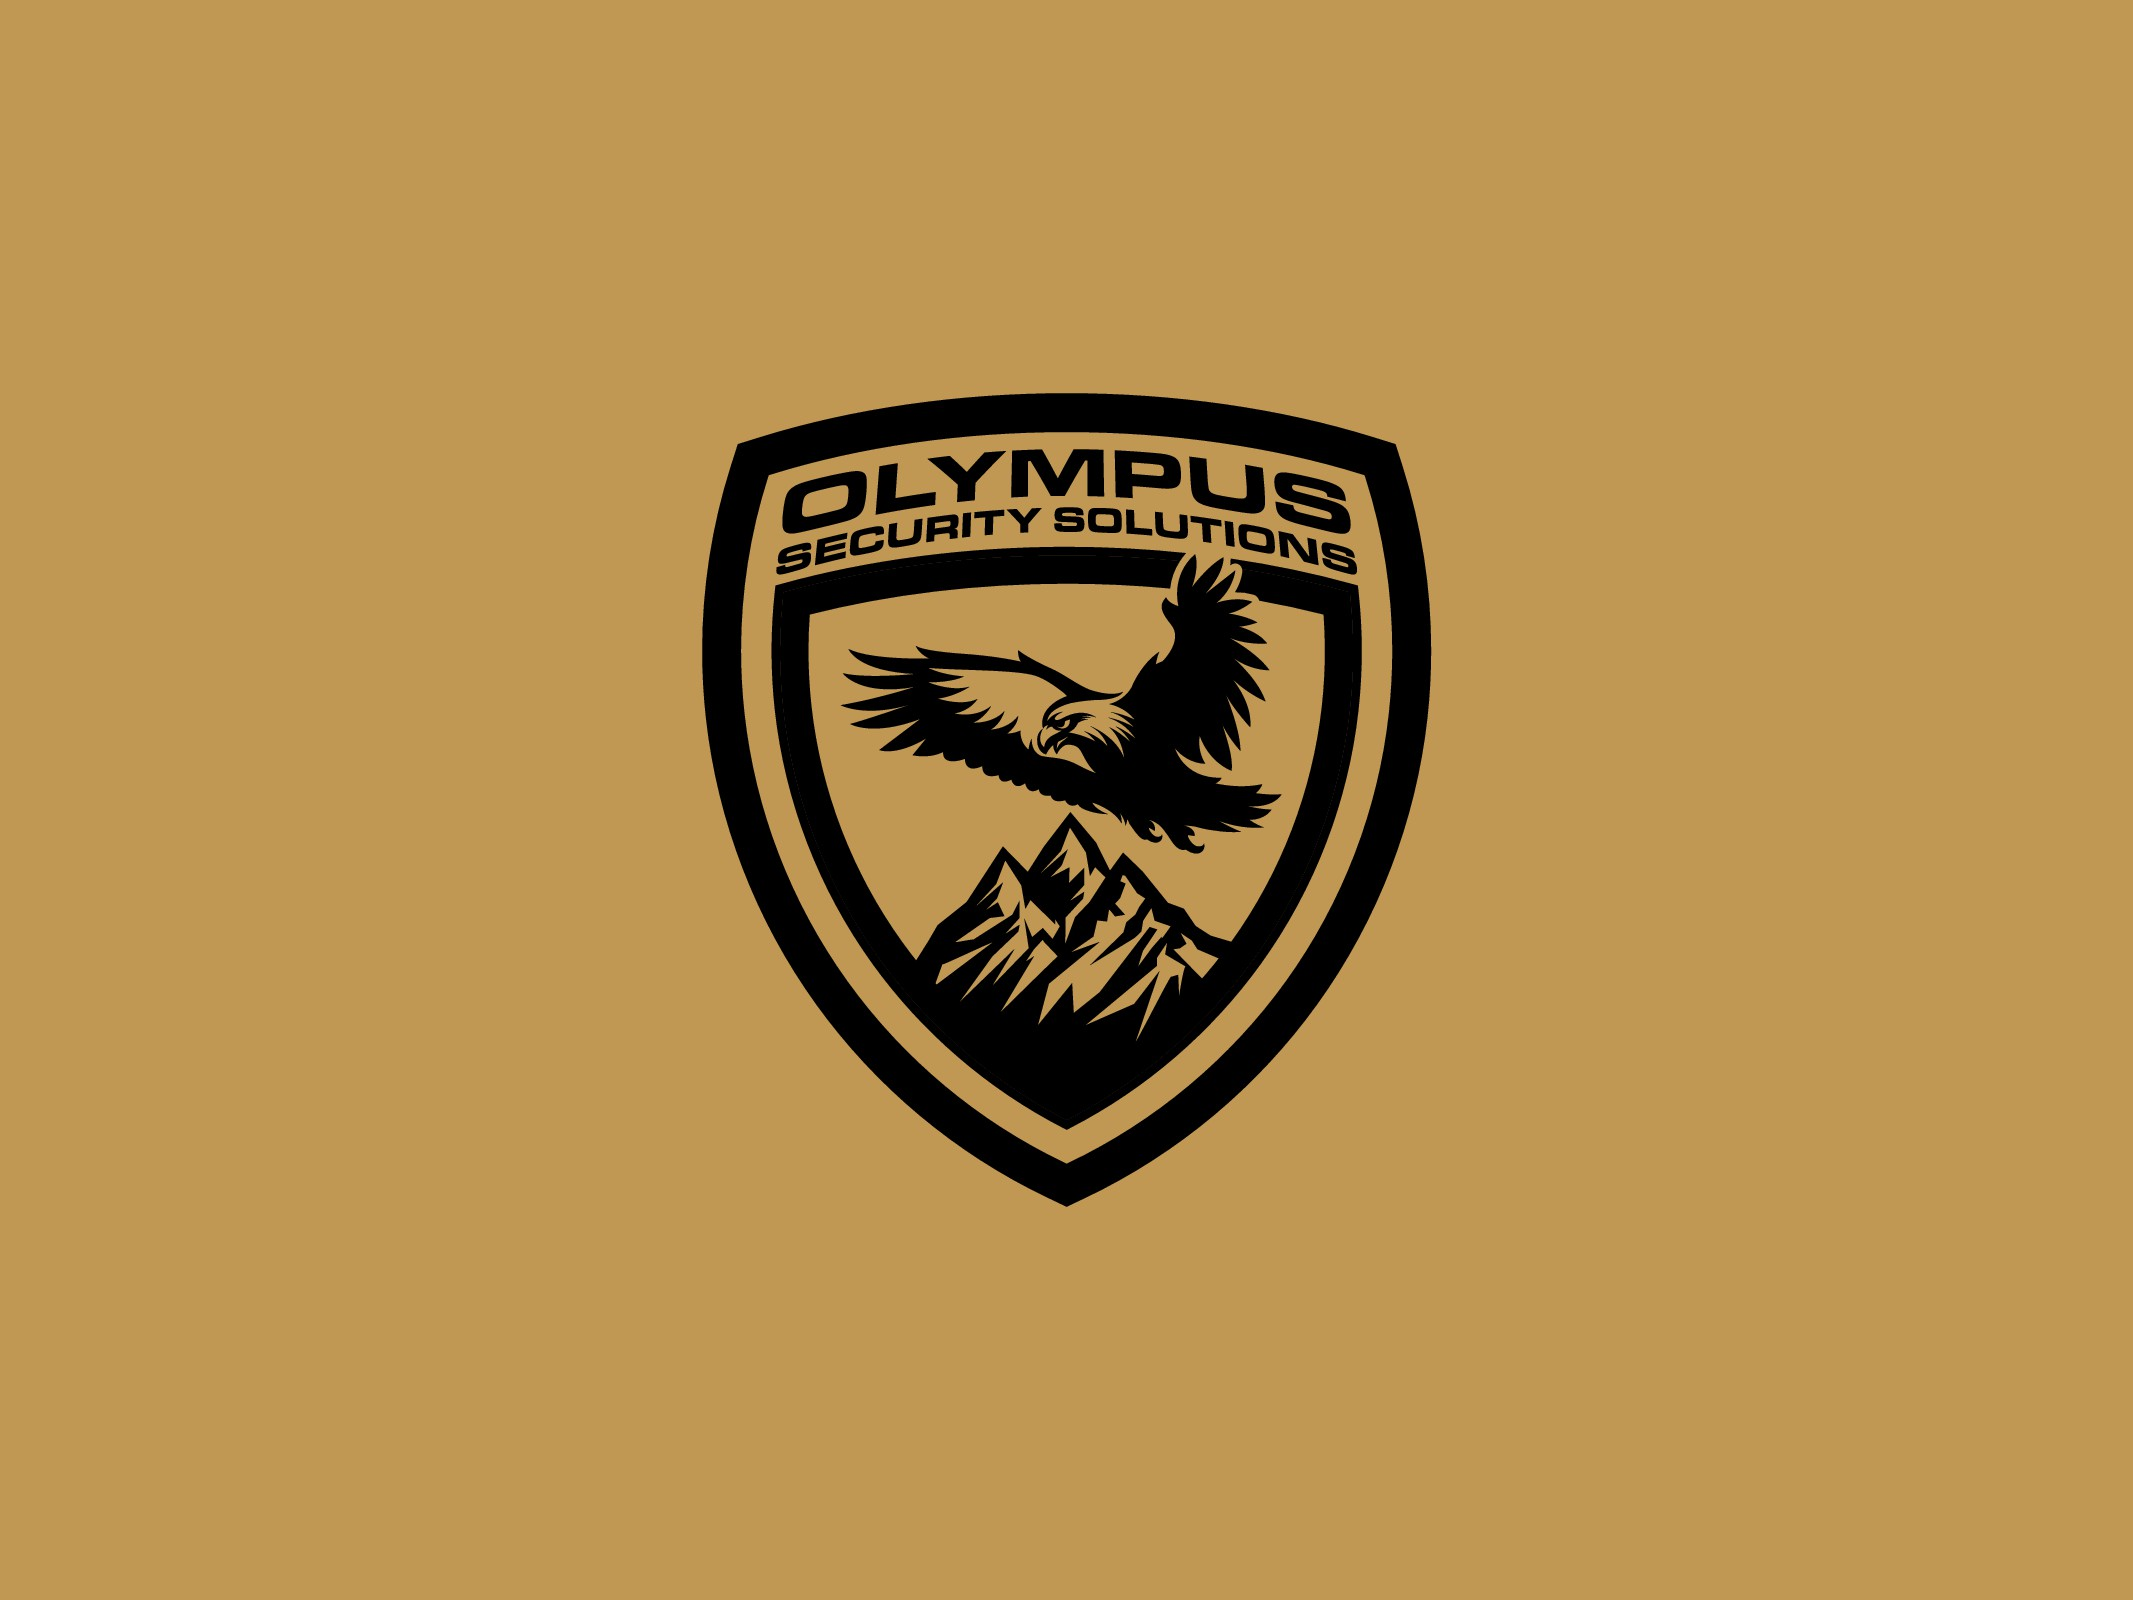 Olympus Security Solutions